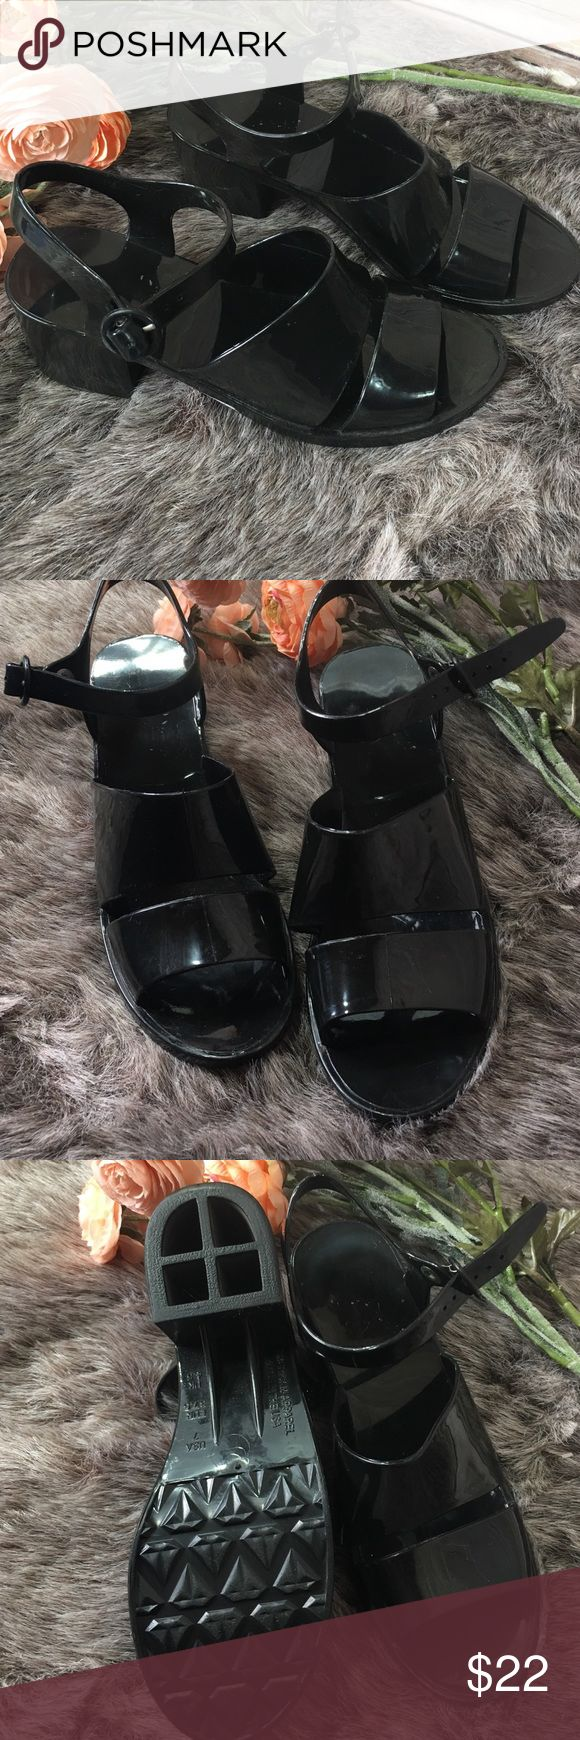 Black jelly sandals american apparel - Like New American Apparel Classic Black Jelly Heel